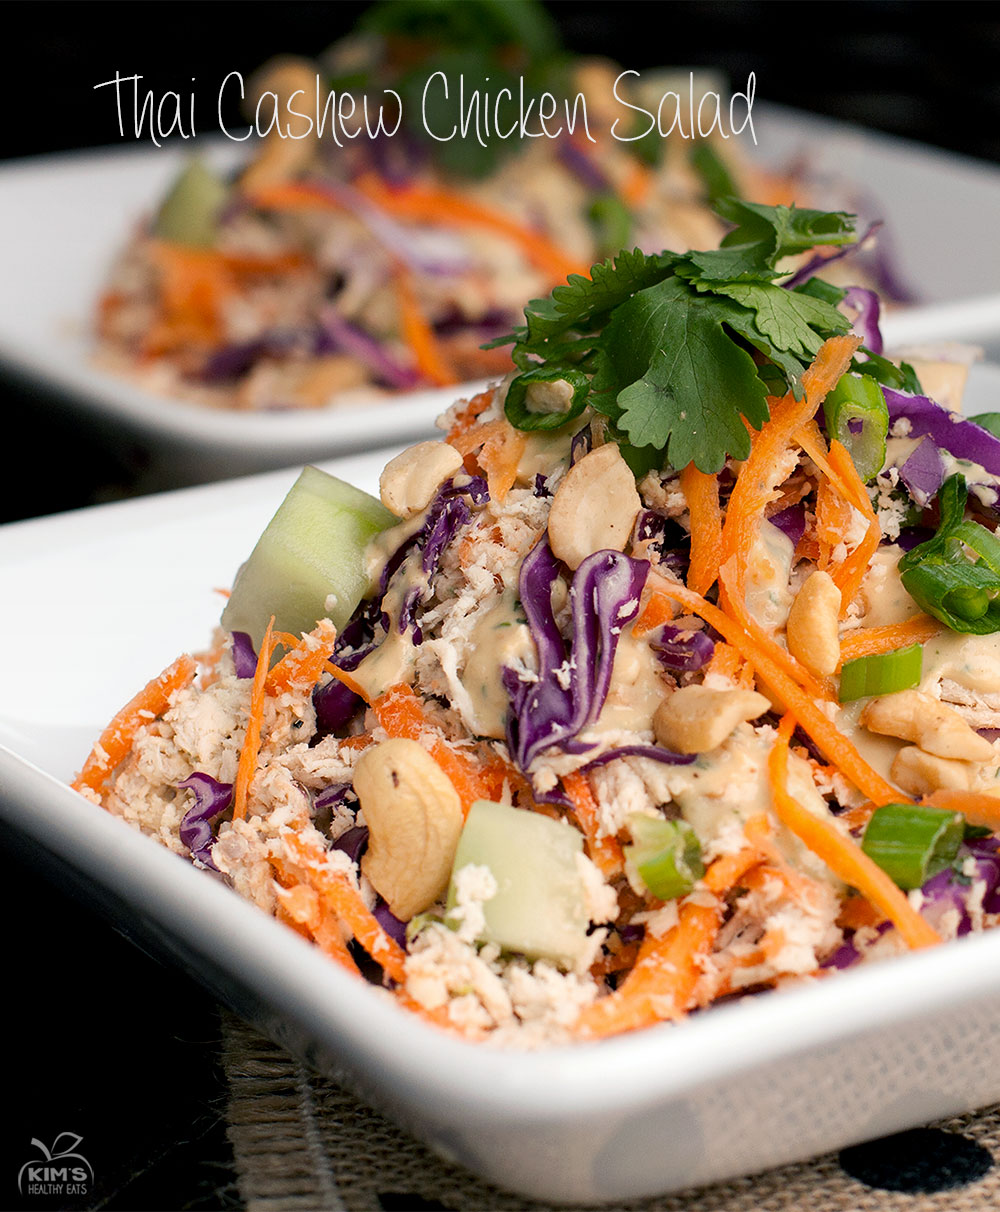 Thai Cashew Chicken SaladThai Cashew Chicken Salad